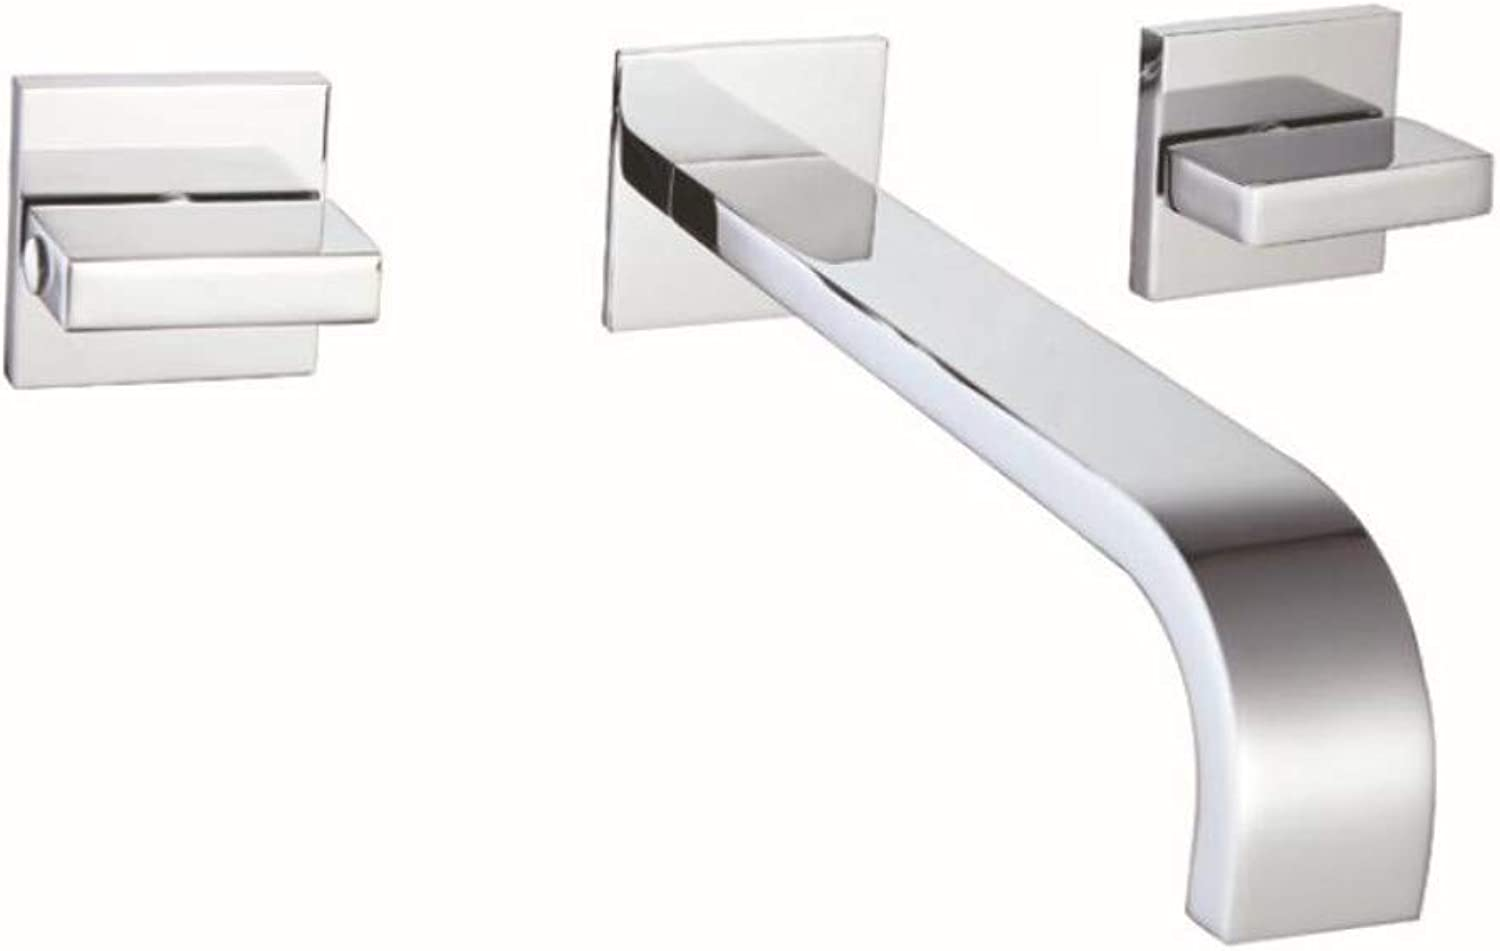 Basin Tap Built-in Double Handle Double Open Concealed Hot and Cold Water Basin Faucet 3 Piece Set Faucet